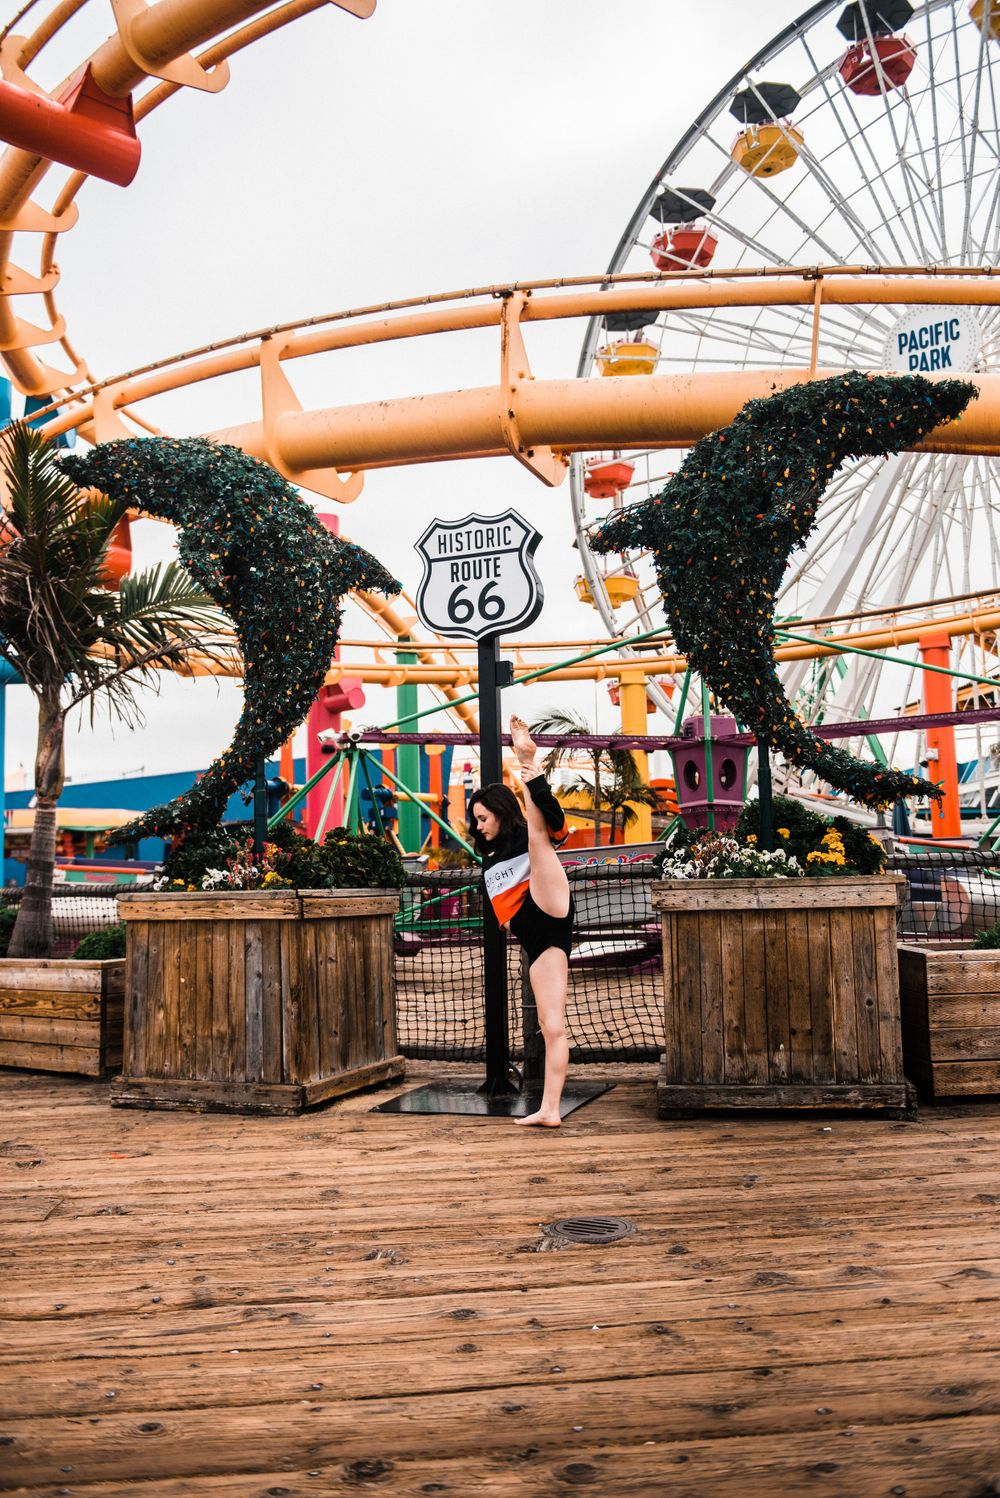 Girl doing the splits while dancing in front of a rollercoaster during a Santa Monica Pier photoshoot